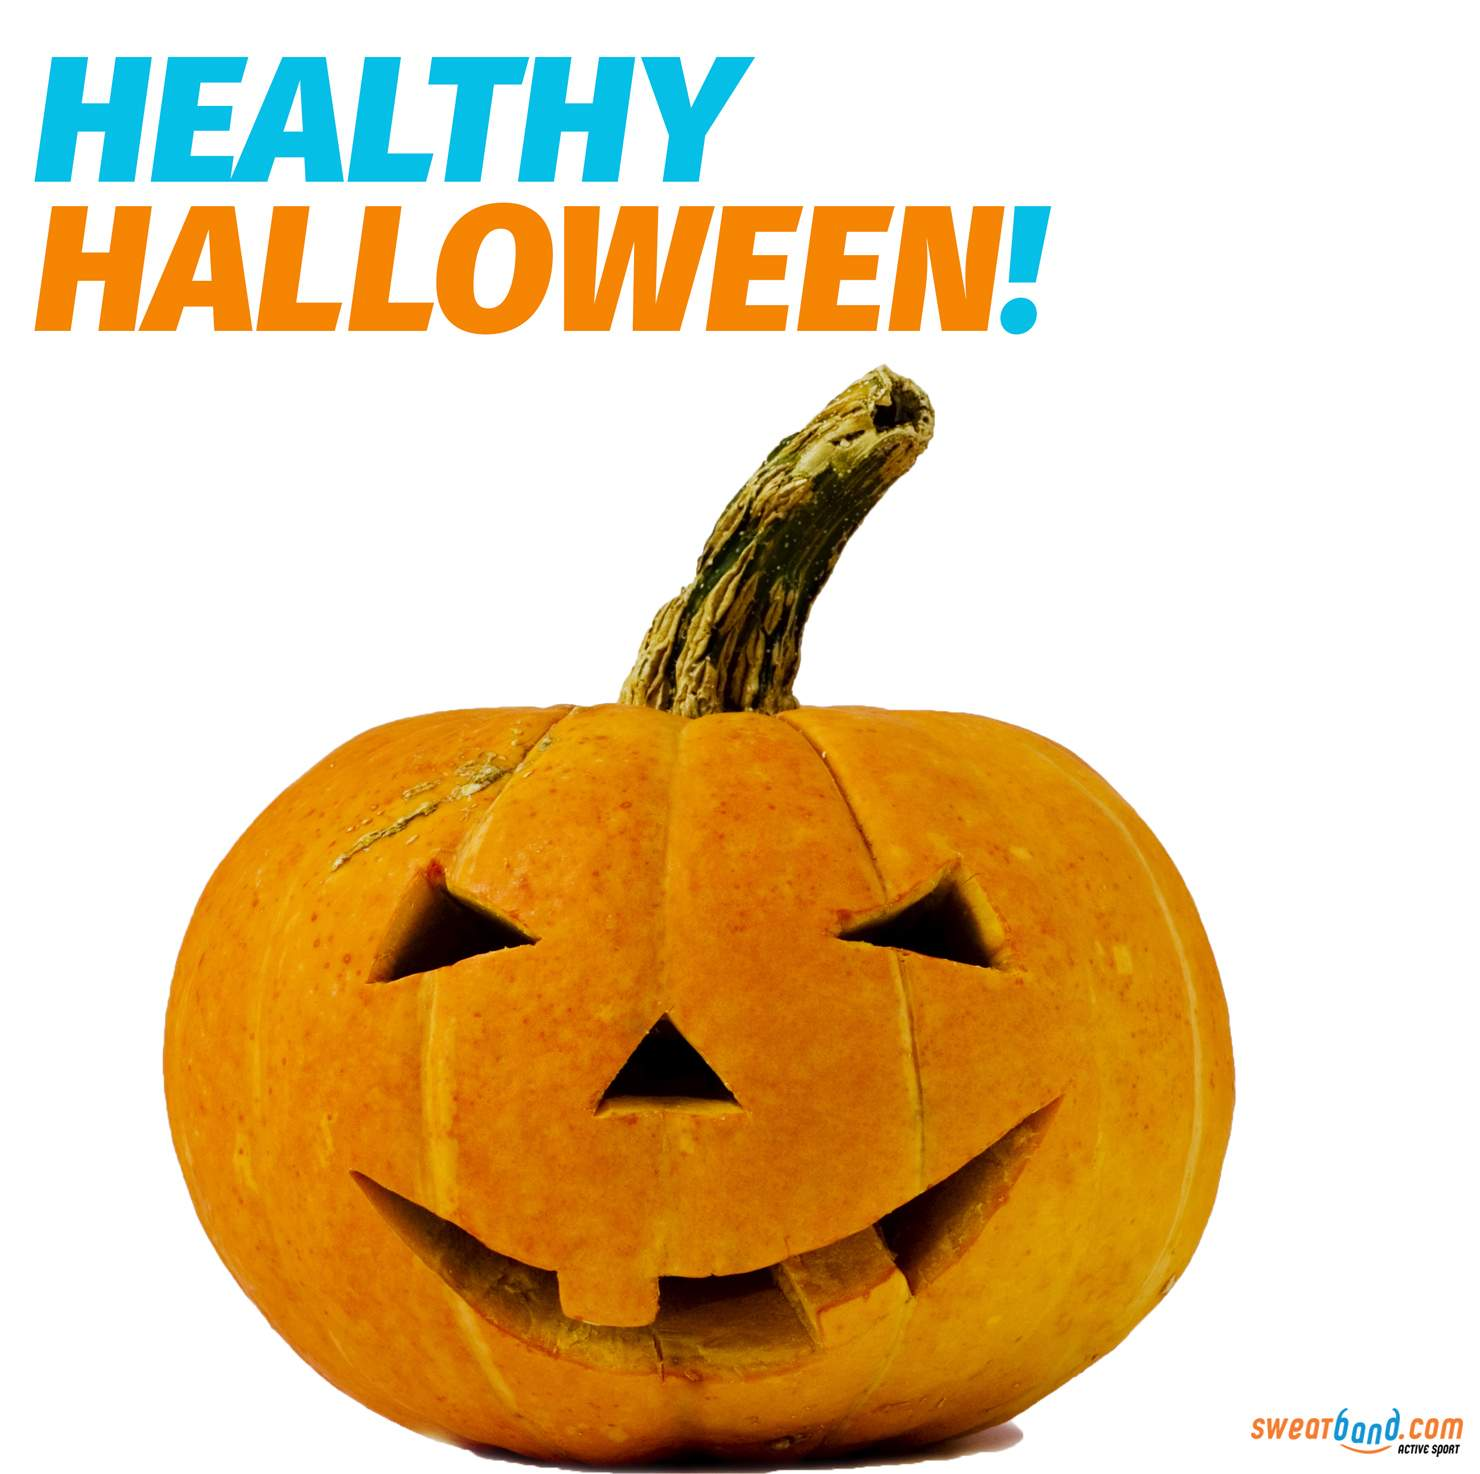 Make this year a healthy Halloween with our top tips!